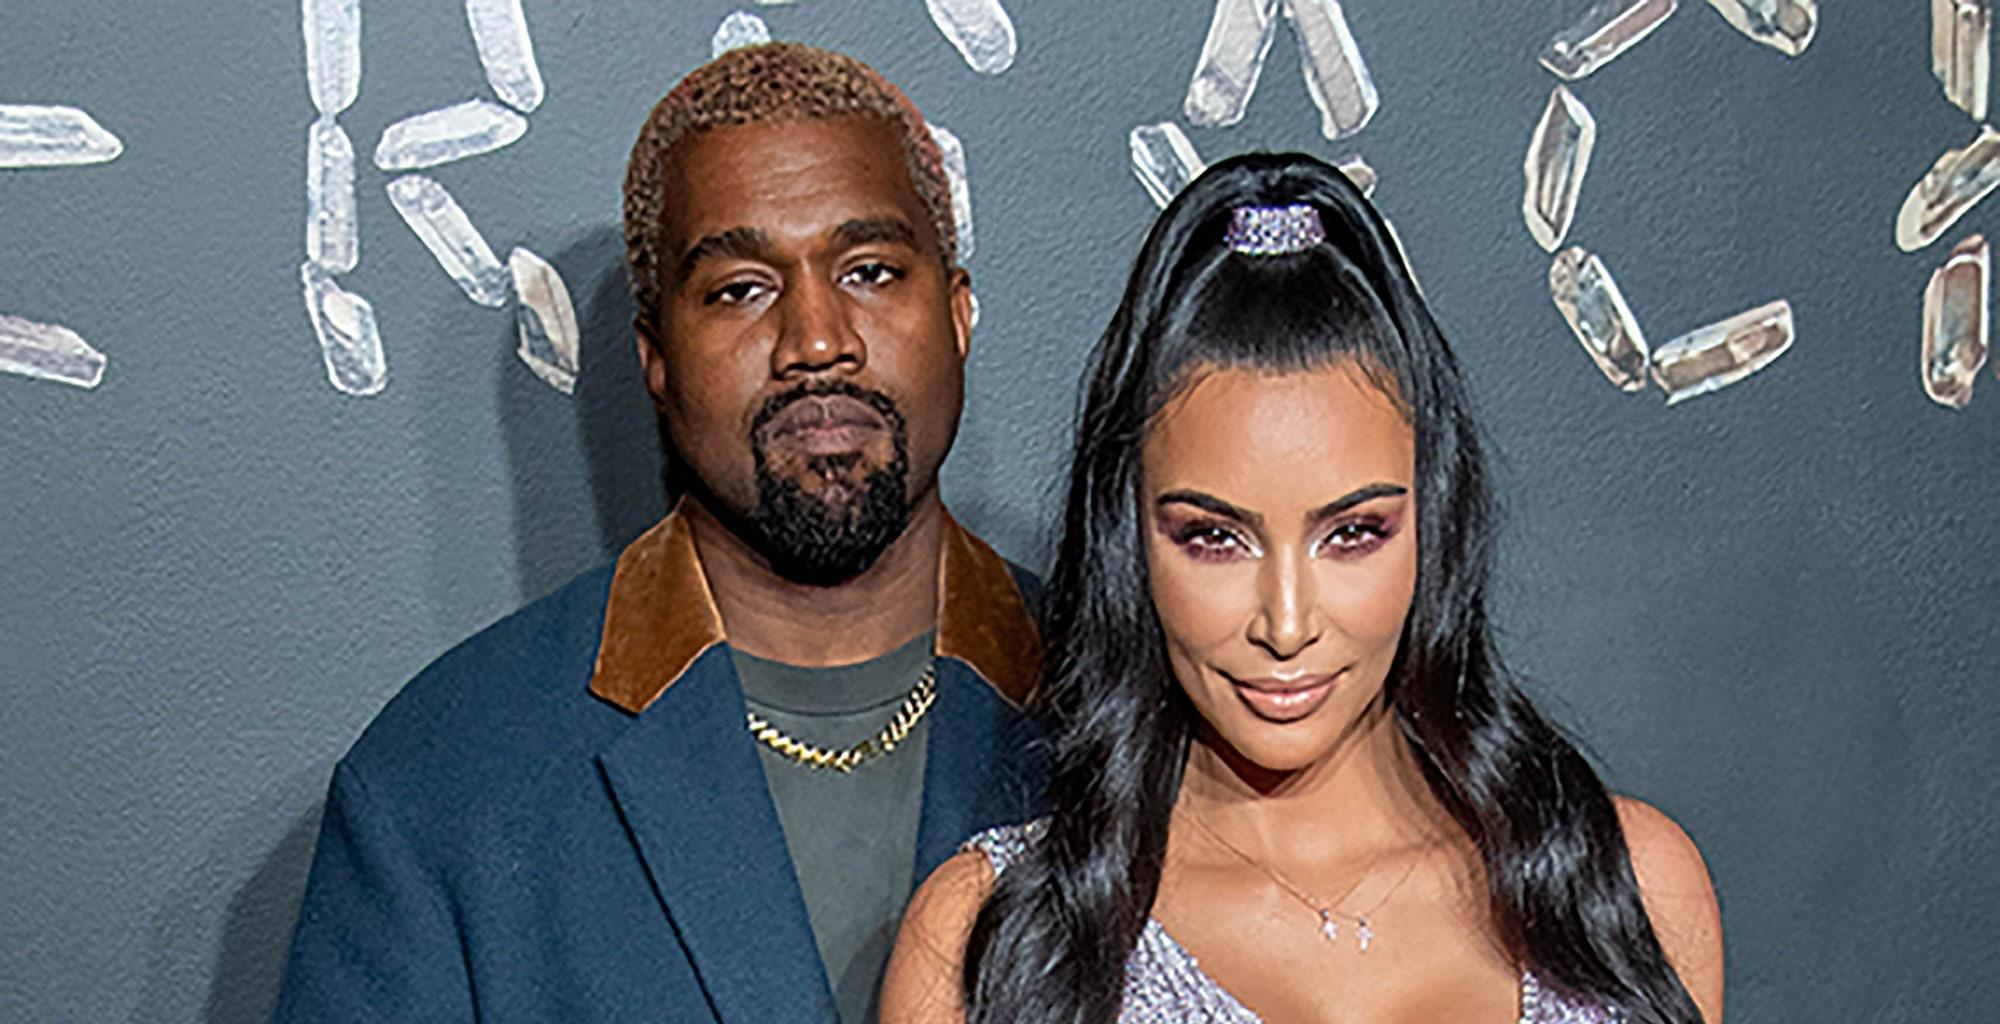 KUWTK: Kim Kardashian And Kanye West To Still Spend The Holidays Together Amid 'Separate Lives' Reports - Here's Why!